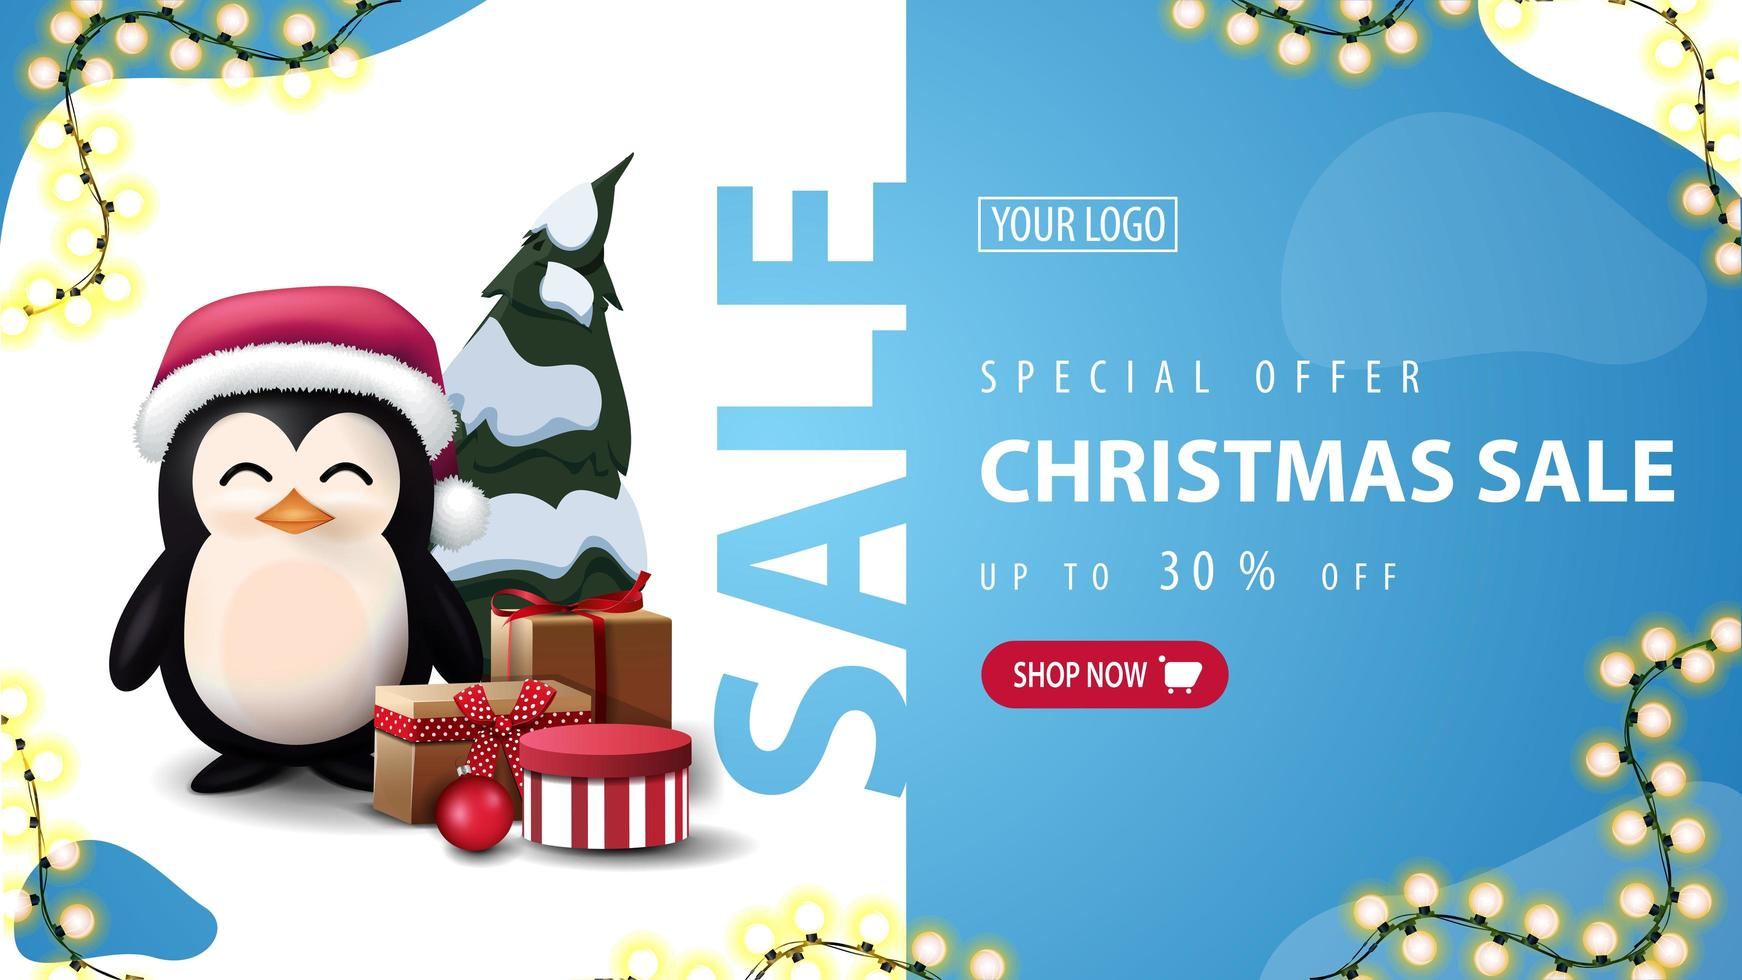 Discount banner with liquid abstract shapes vector